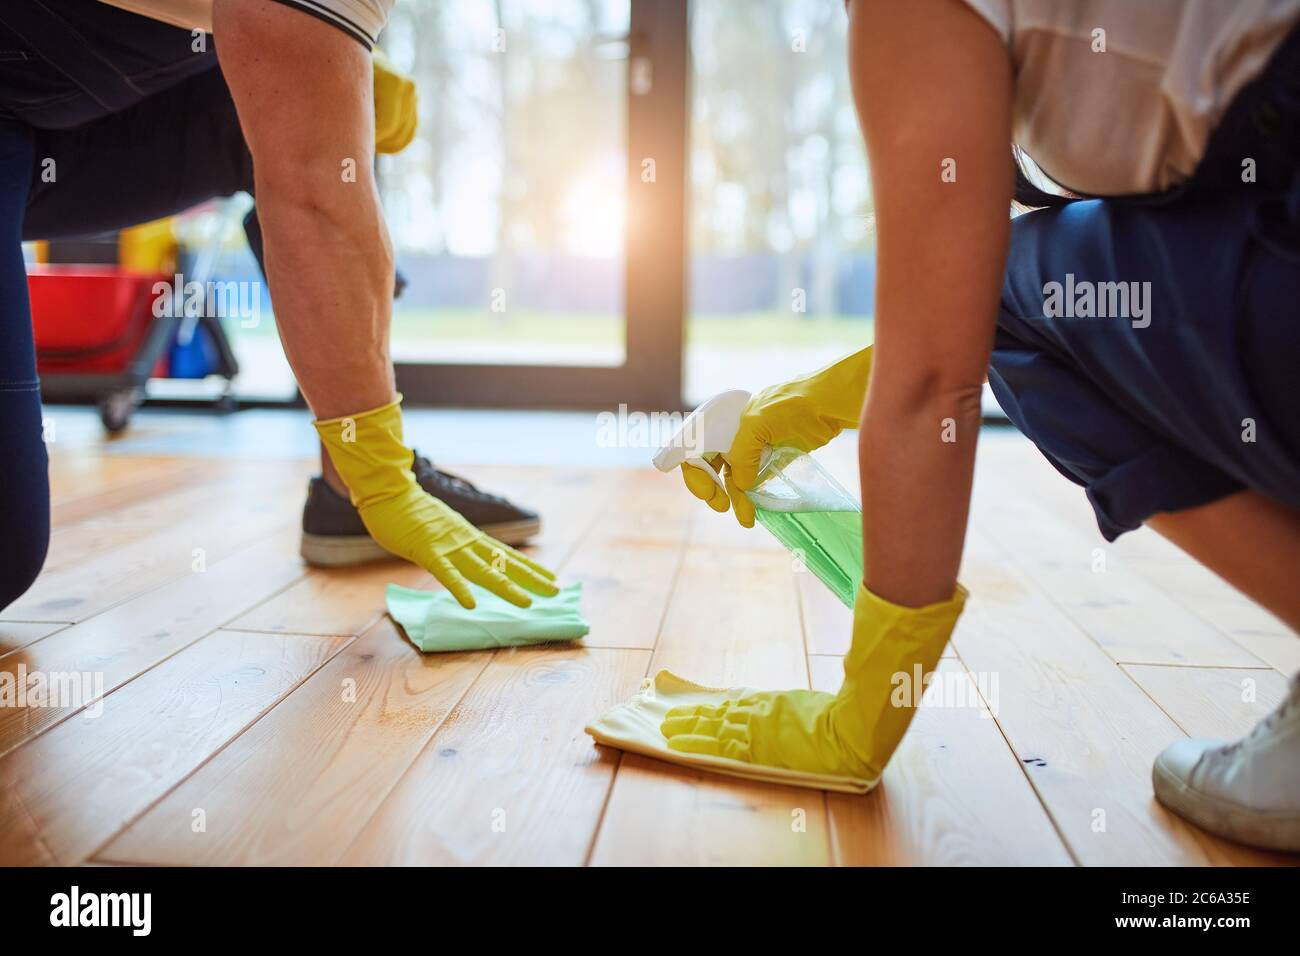 regular clean up. Cleaning people, janitors washing floor with rags and spray. Housekeeping concept. WIndow background Stock Photo